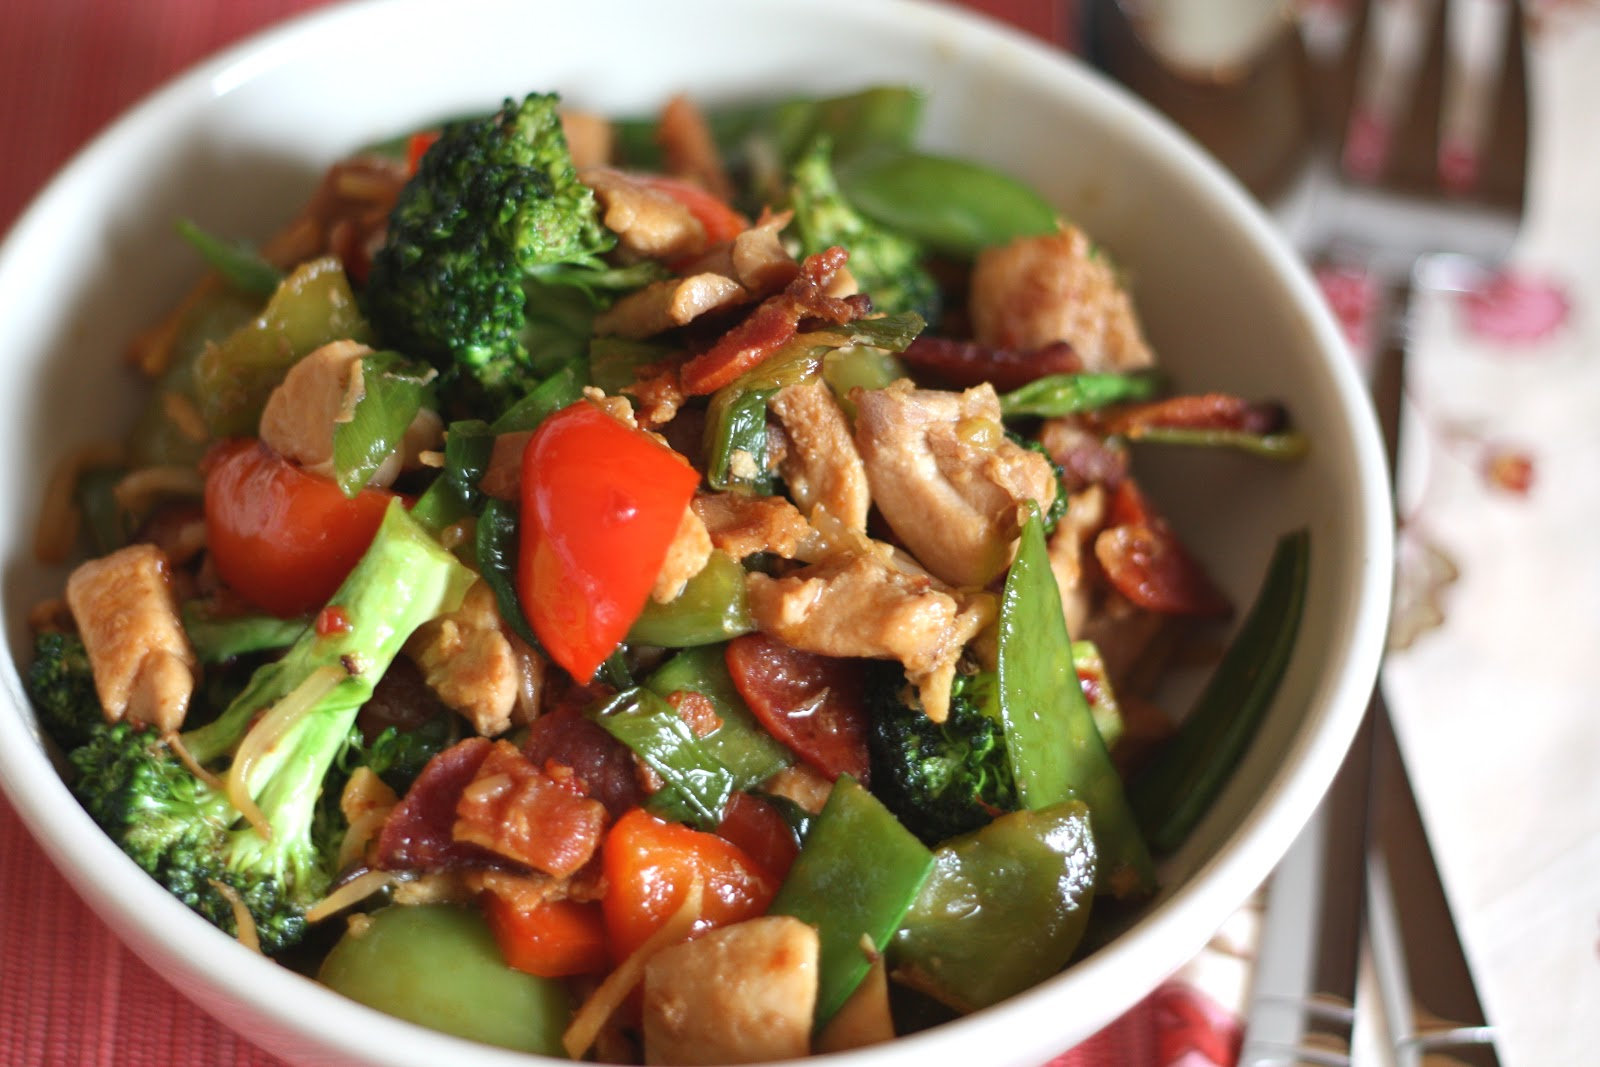 Barefeet In The Kitchen: Spicy Chinese Vegetable Stir Fry with Chicken